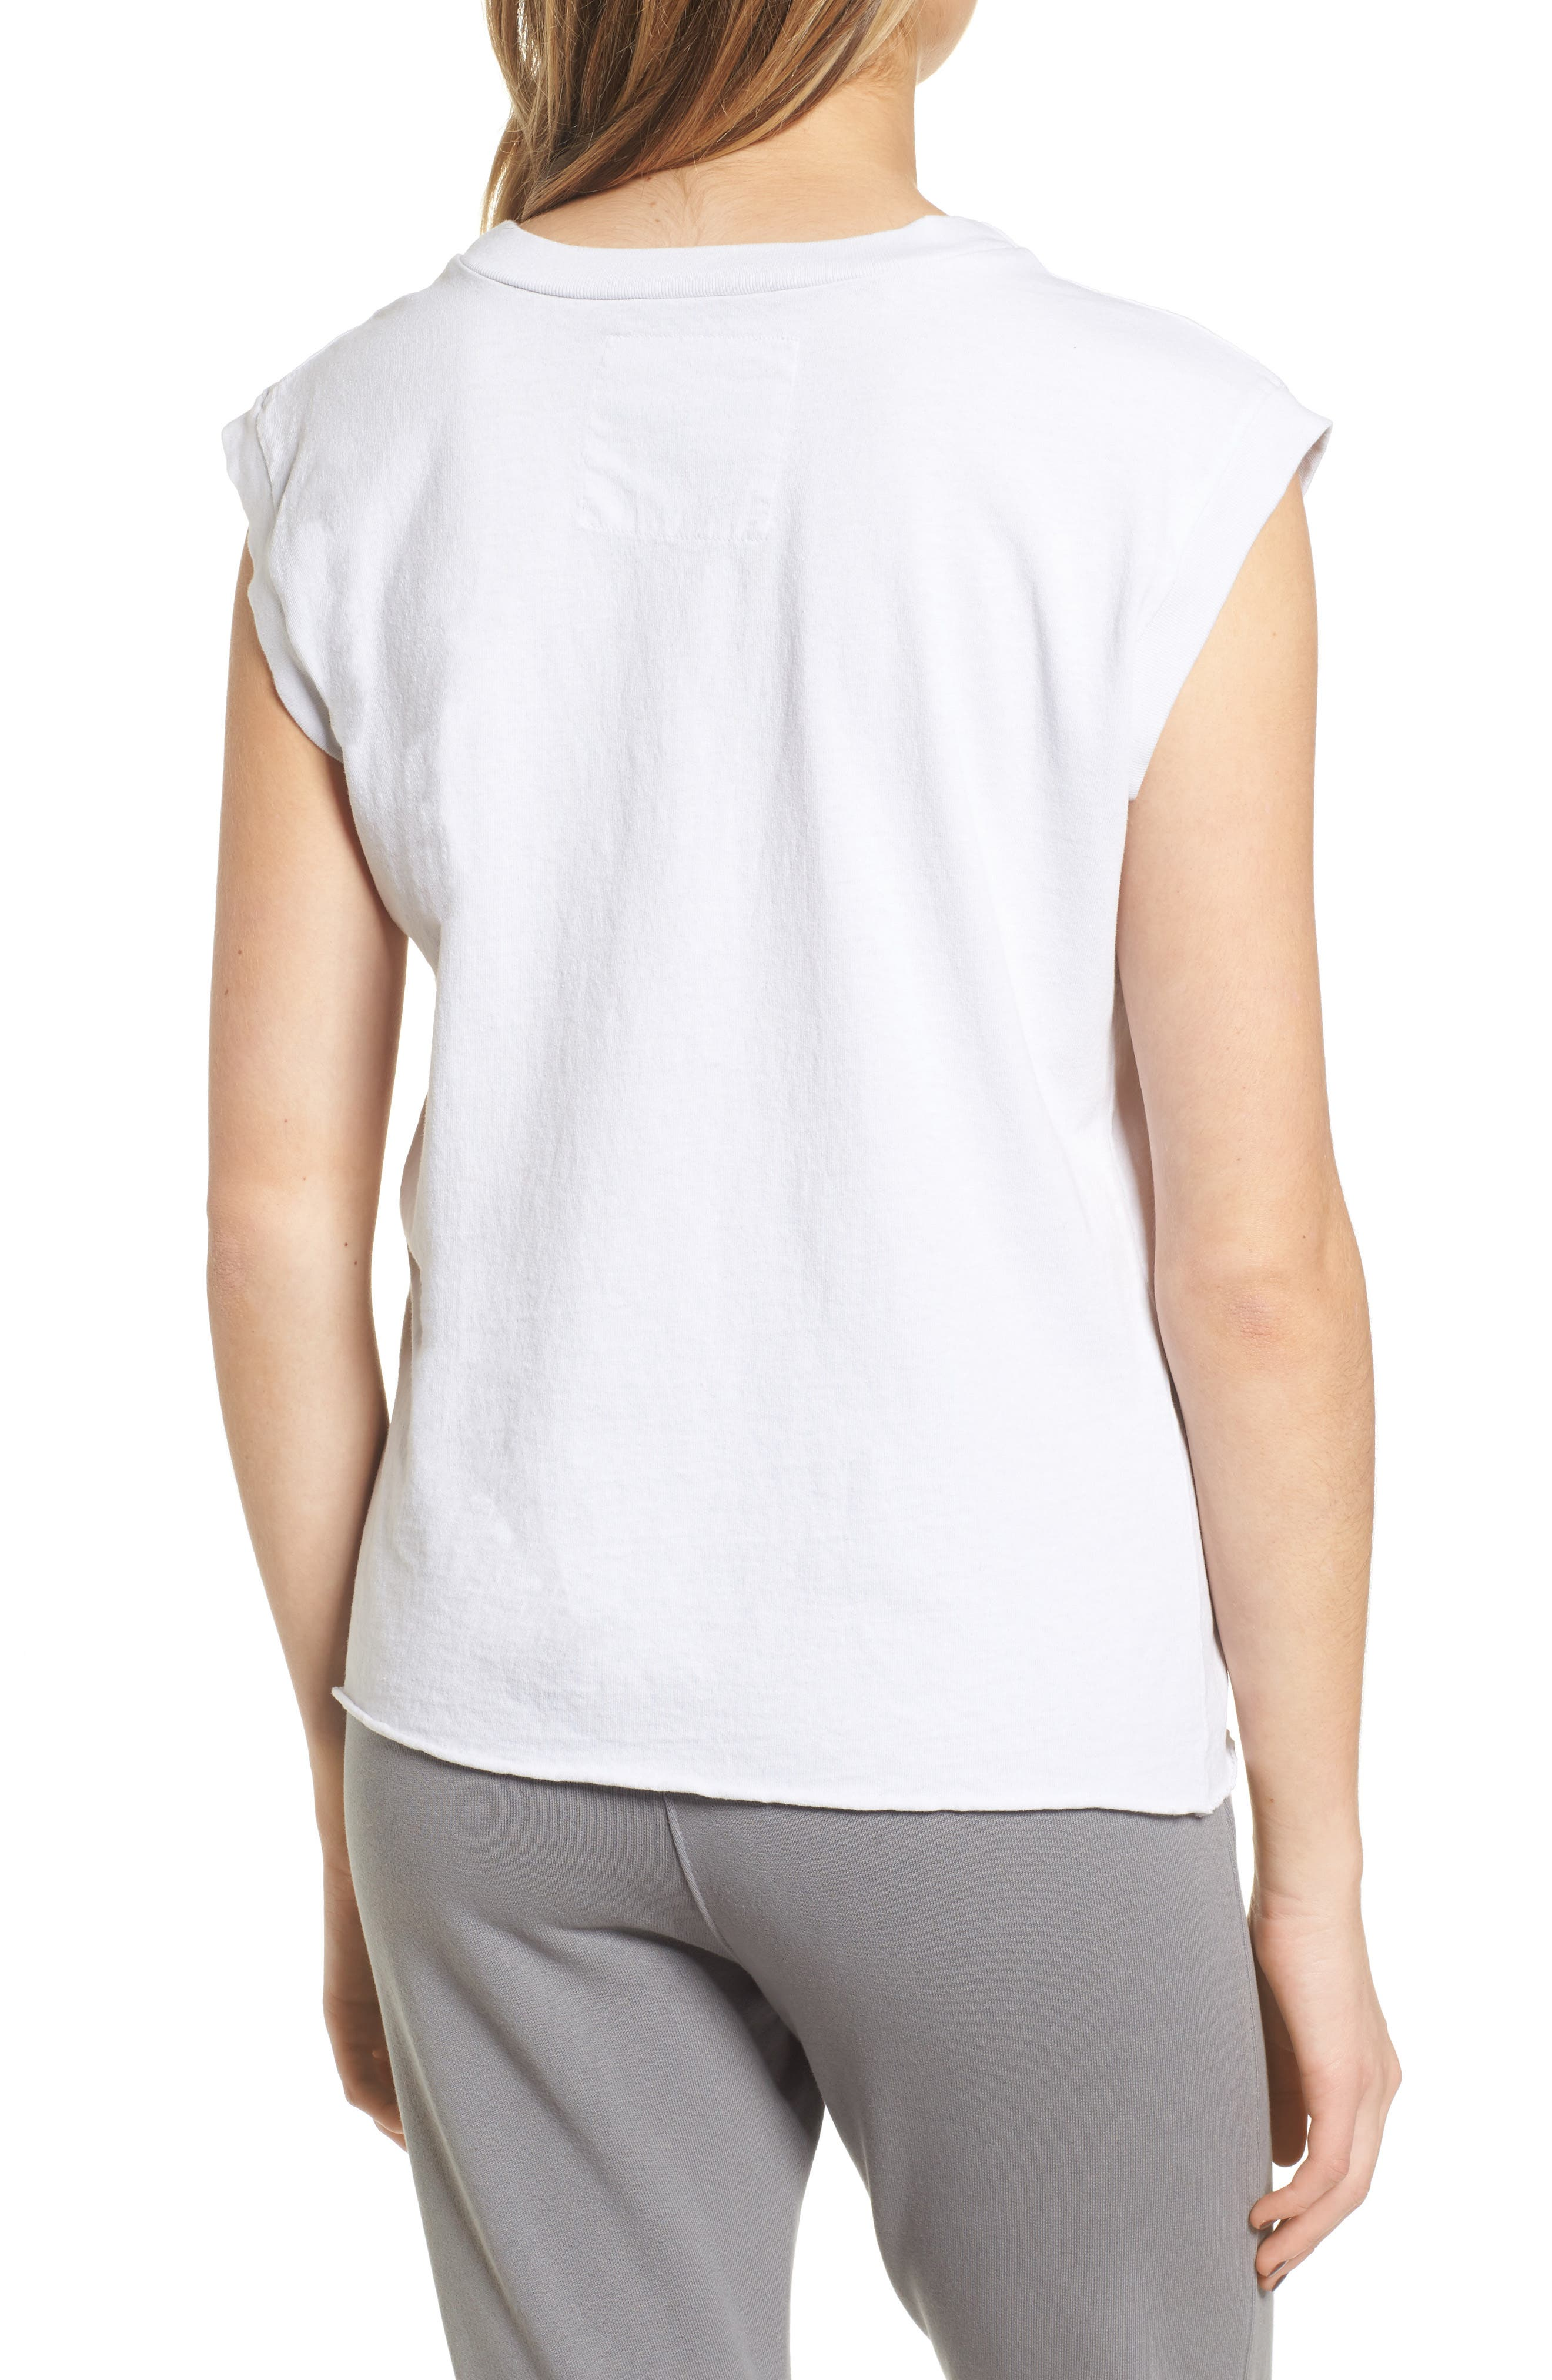 Tee Lab Muscle Tank,                             Alternate thumbnail 2, color,                             Dirty White